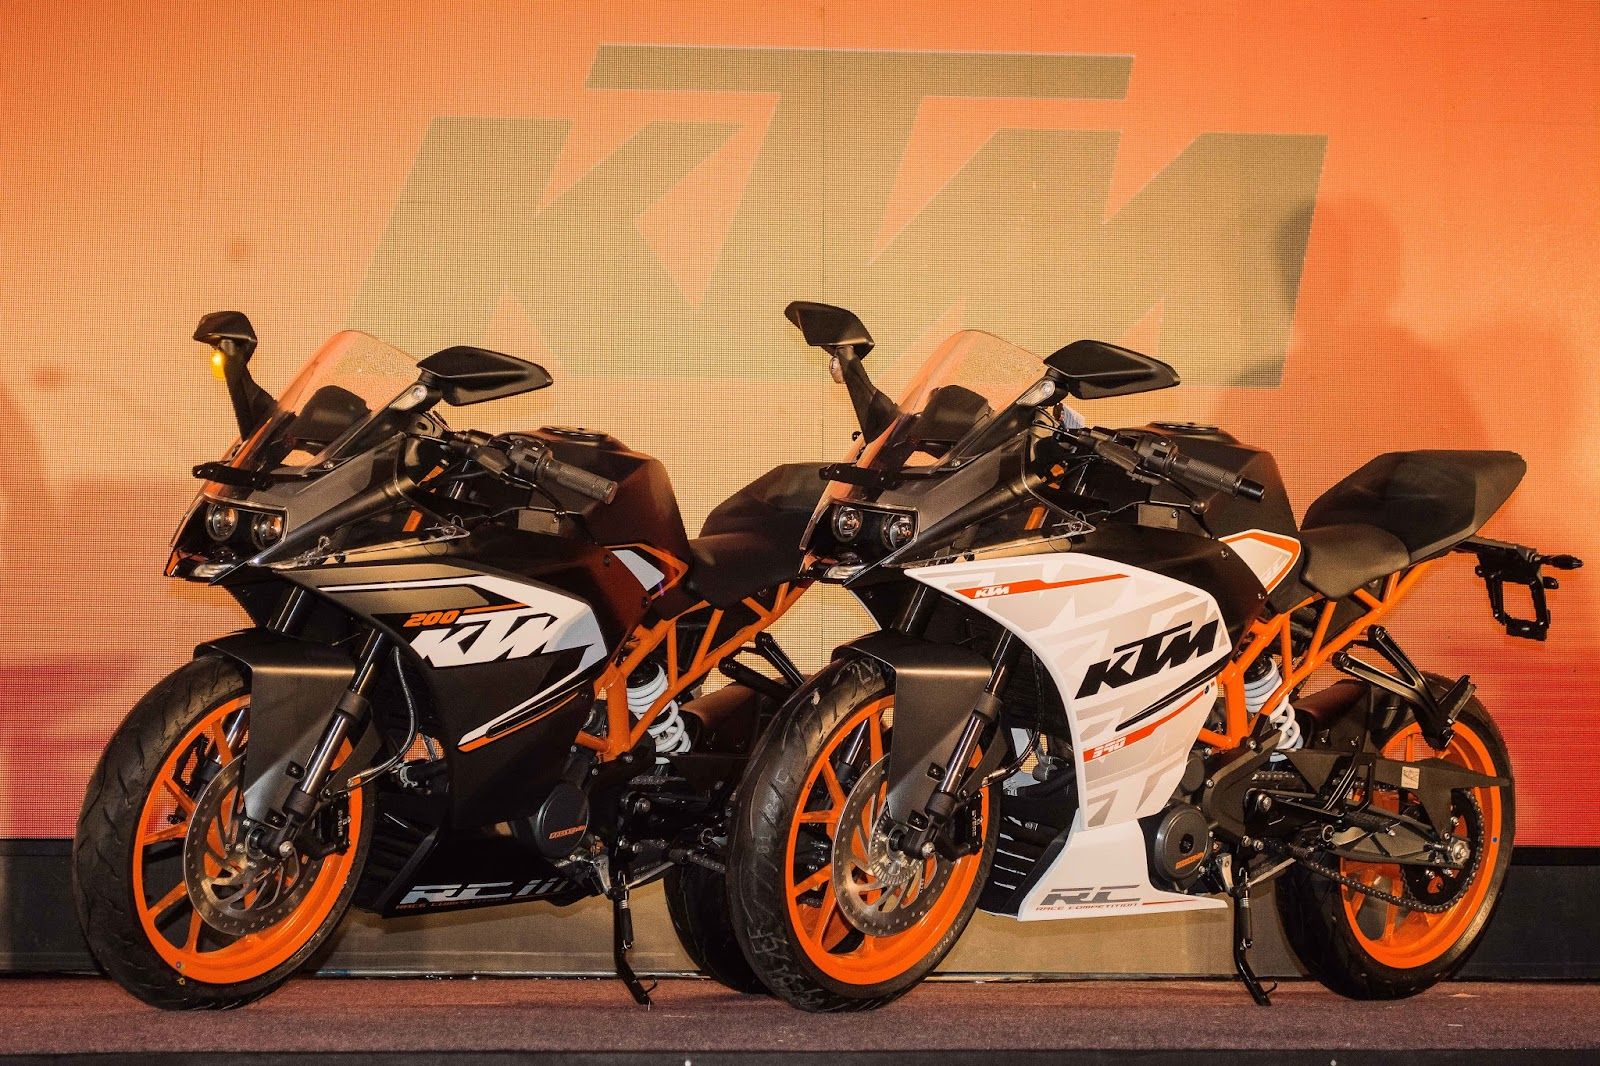 Ktm Rc 390 0 60 >> KTM RC 200 & RC 390 Launched - Page 6